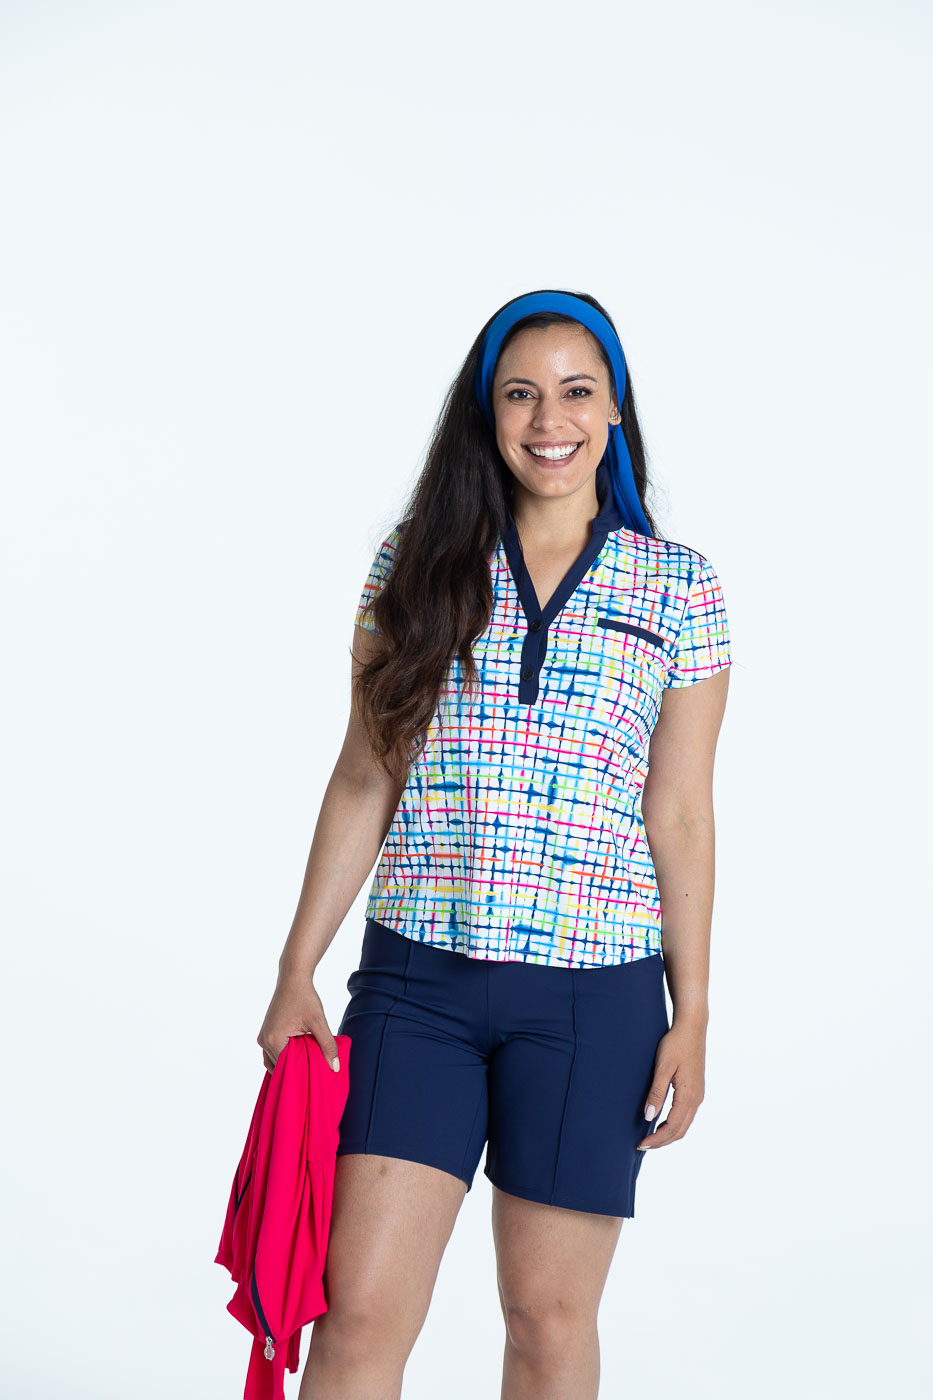 Woman golfer in a blurred lines Shoulder Opener Shortsleeve golf shirt and navy blue Tailored and Trim Golf Shorts